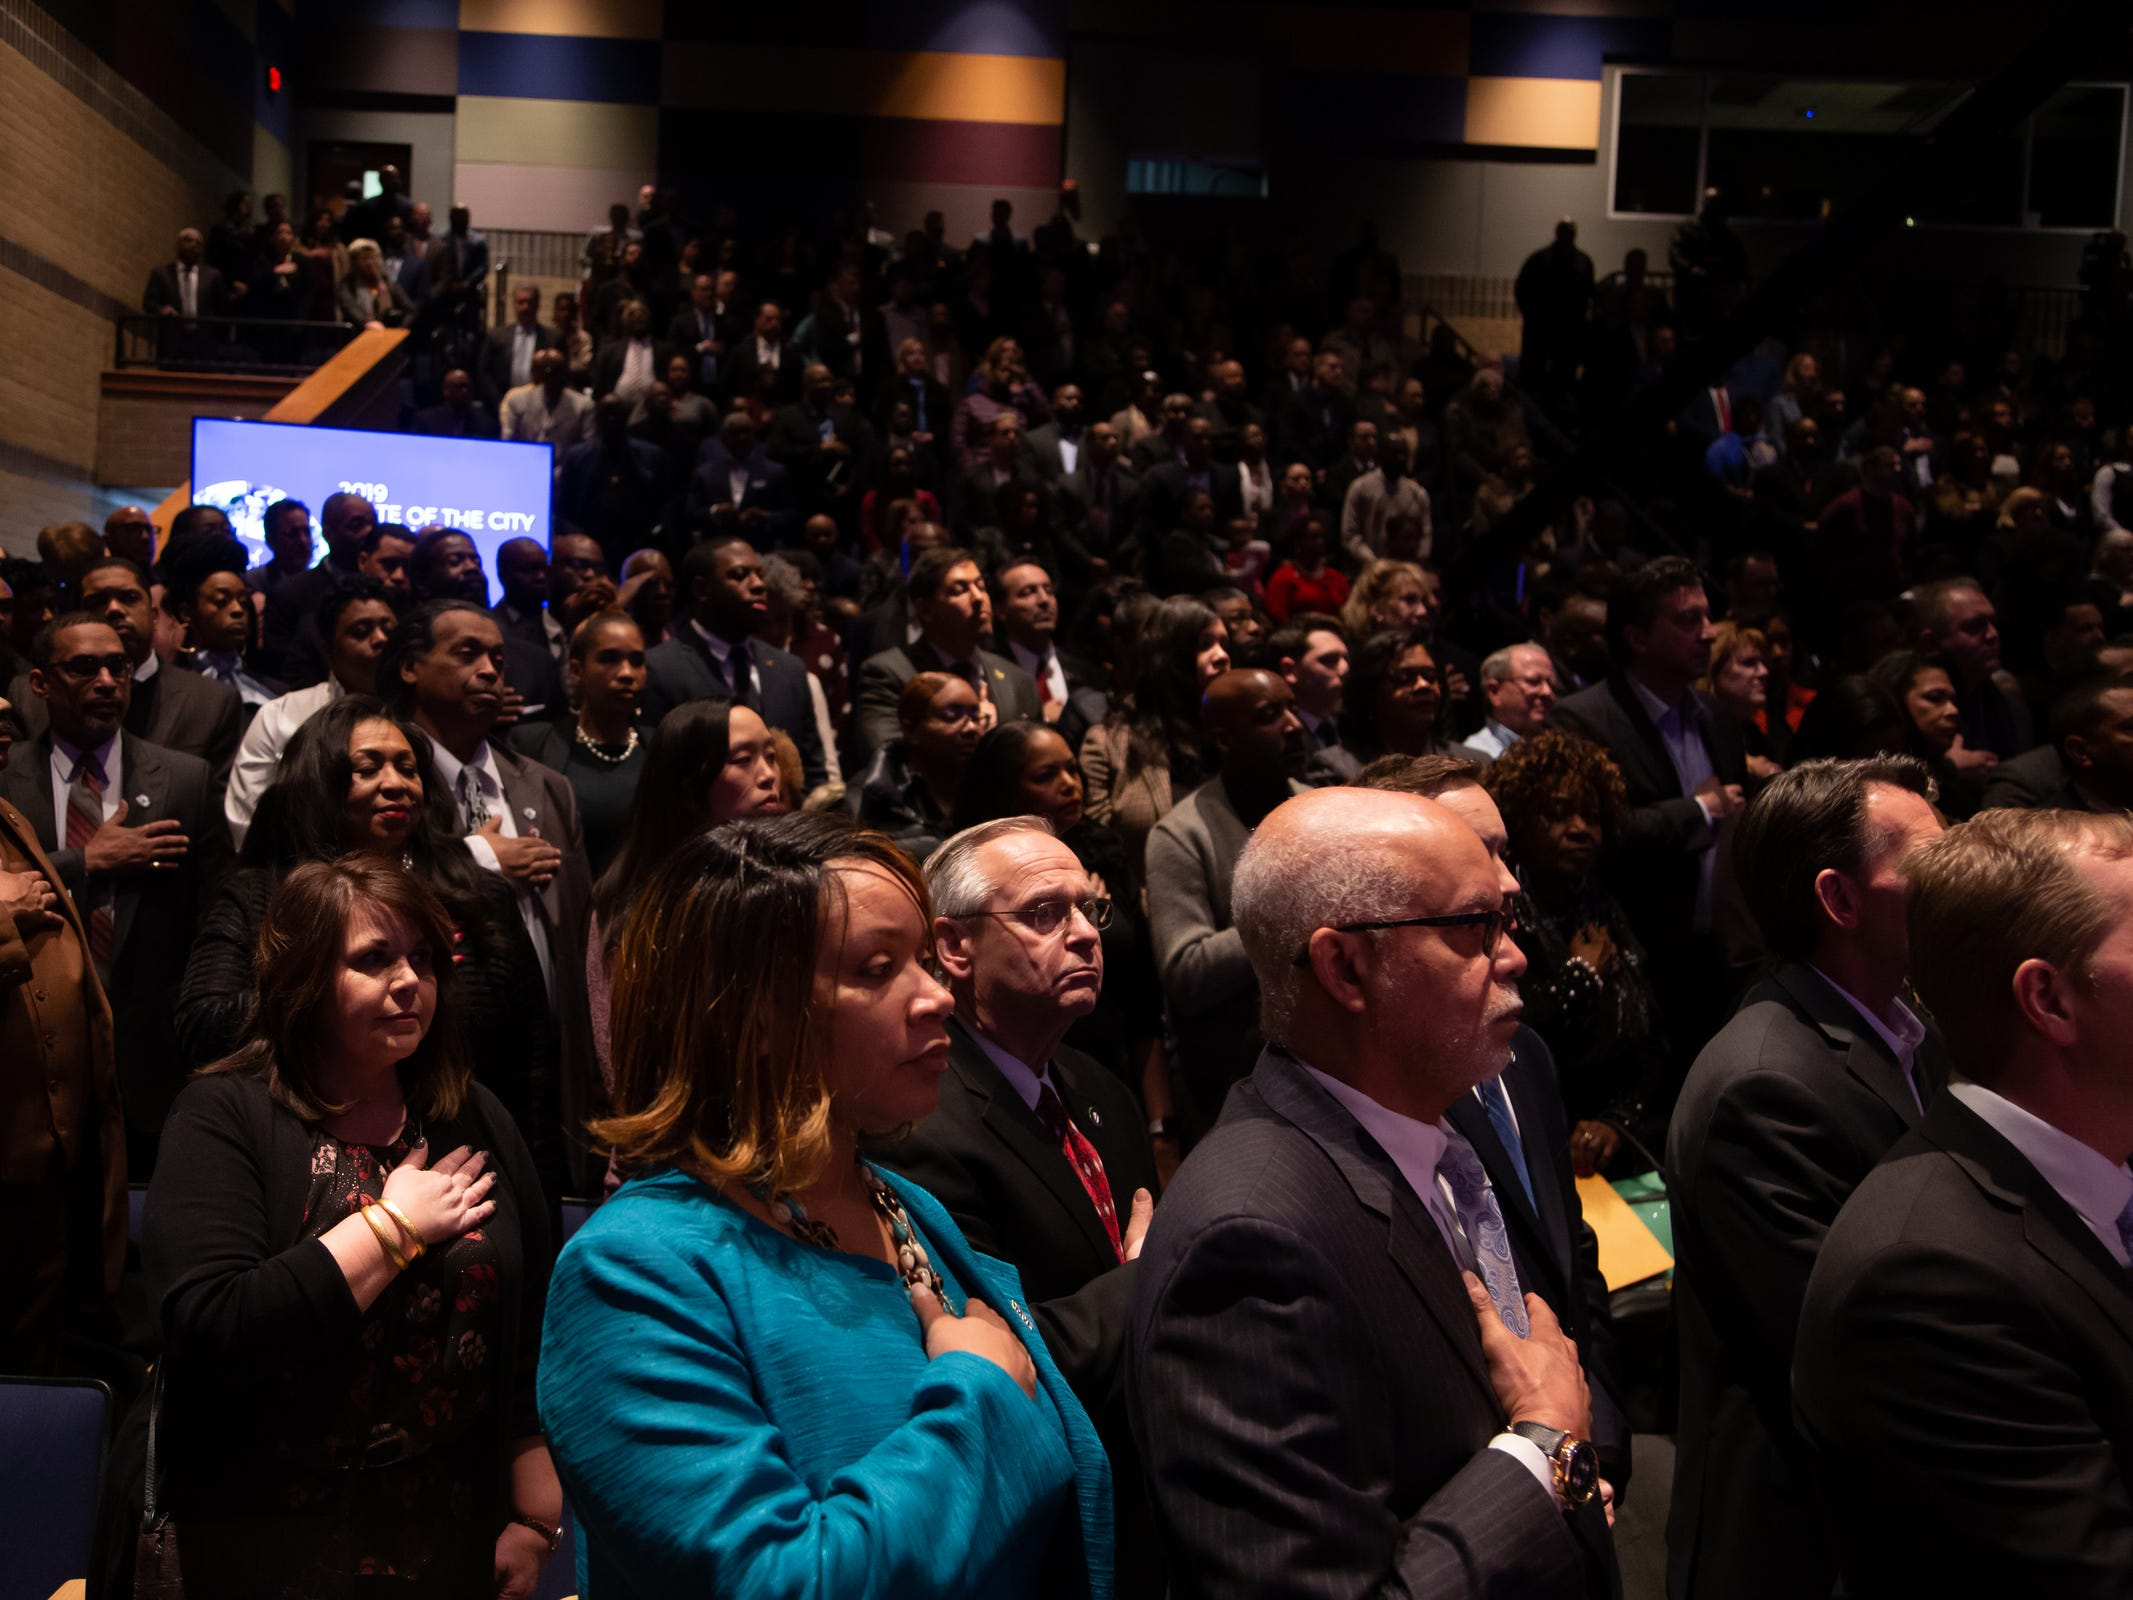 People stand before the start of Detroit Mayor Mike Duggan's speech during the 2019 State of the City Address on Tuesday, March 5, 2019 at East English Village Preparatory Academy in Detroit.